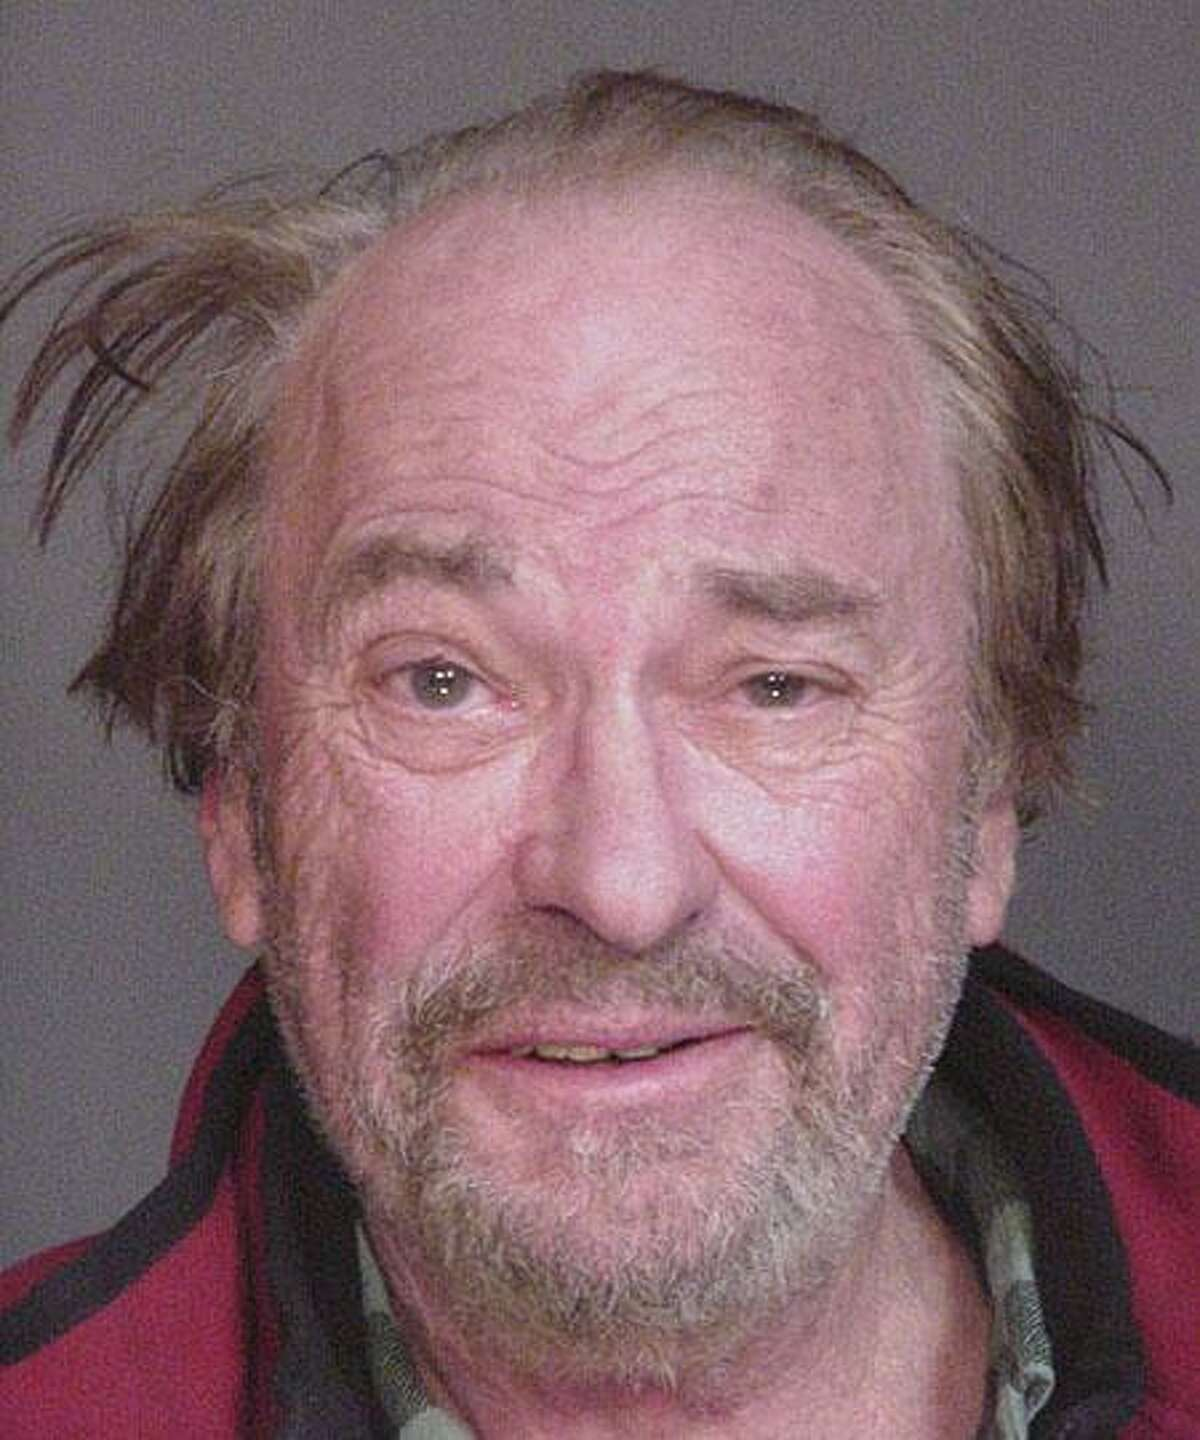 Actor Rip Torn is shown in a mugshot from an earlier New York state drunken driving arrest. The picture became an Internet station.